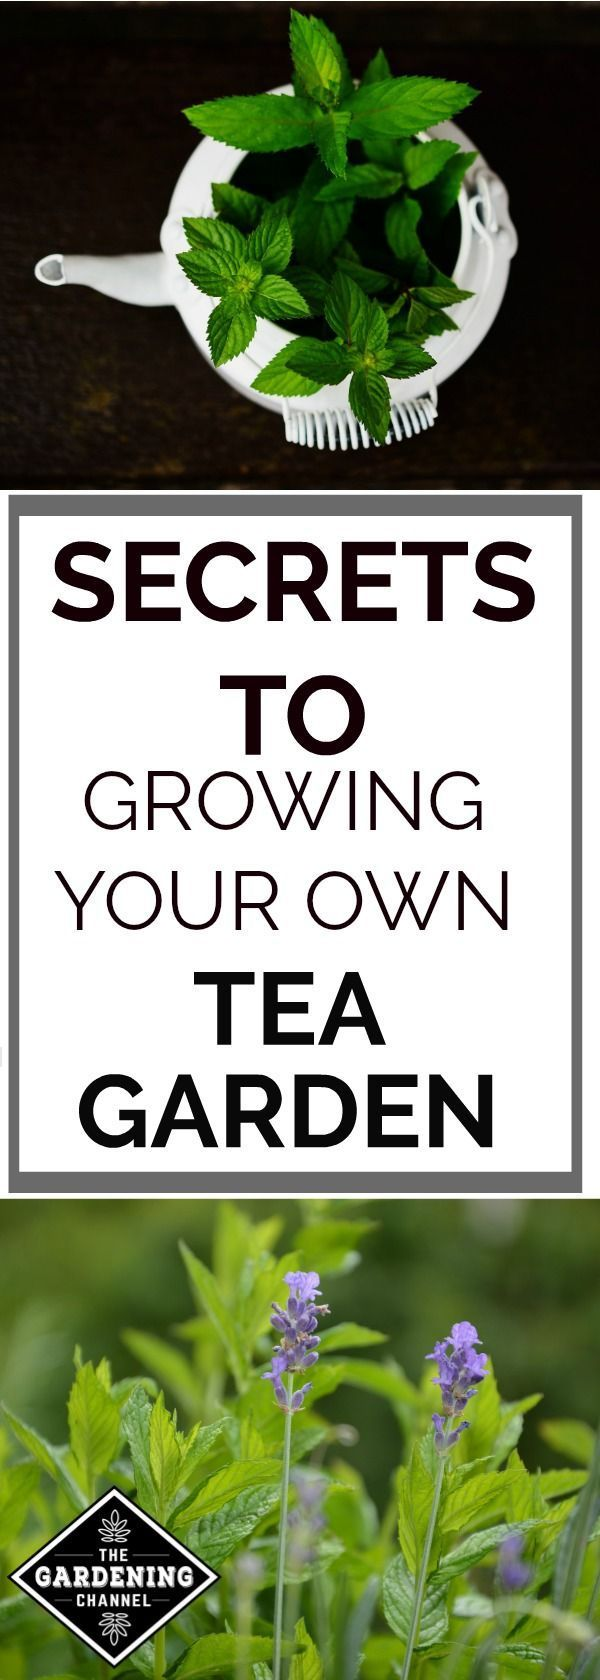 You Can Grow Your Own Tea Garden: Learn How to Grow, Care For and Harvest it! #herbsgarden